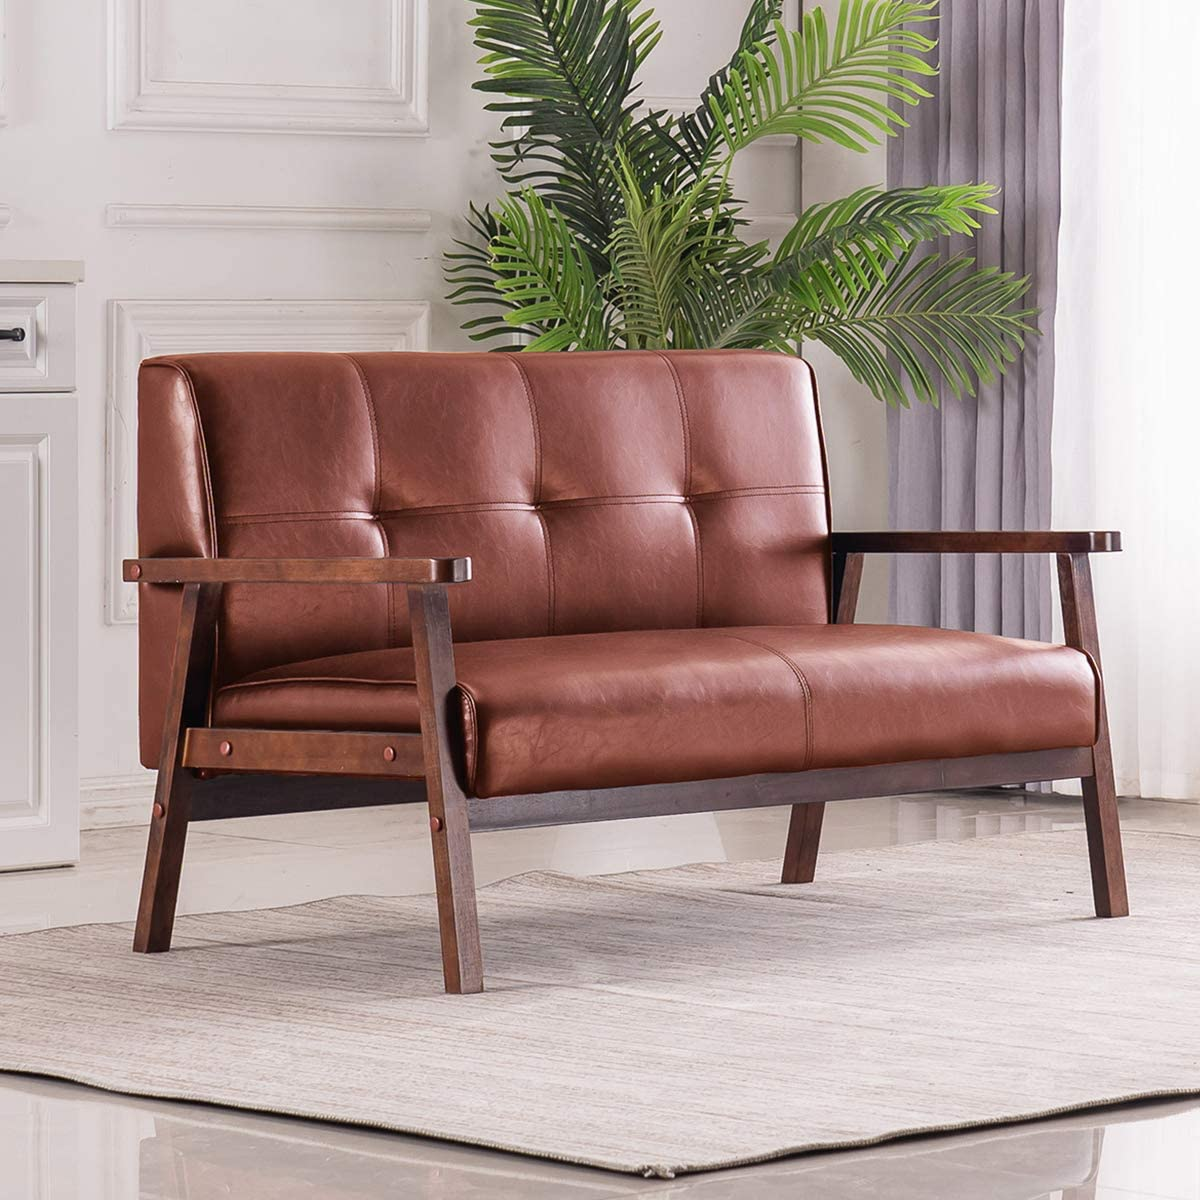 Mid-Century Retro Modern Loveseat Faux Leather Upholstered Wooden 2-Seater Sofa (Brown)